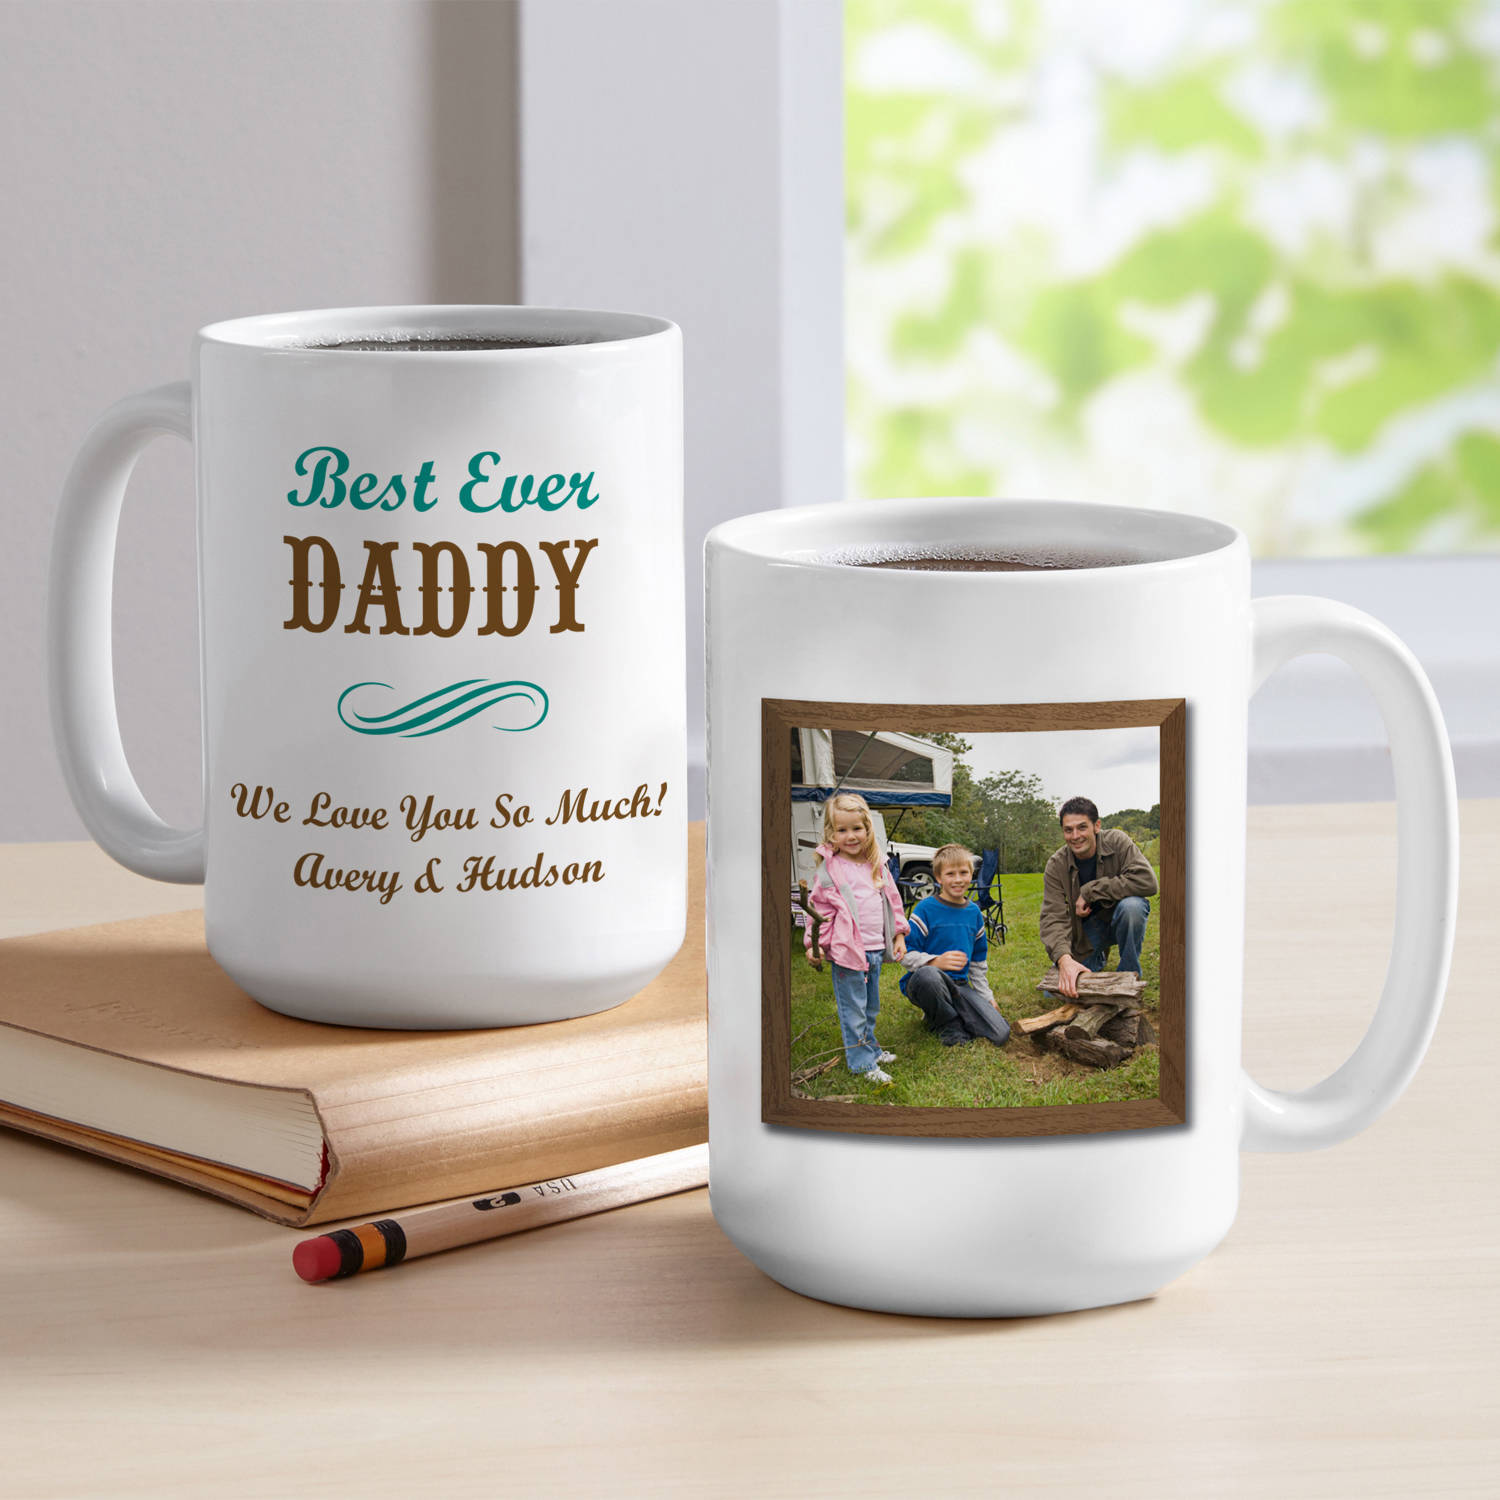 Personalized Best Ever Photo Coffee Mug, 15 oz- Brown, Available in 2 Colors